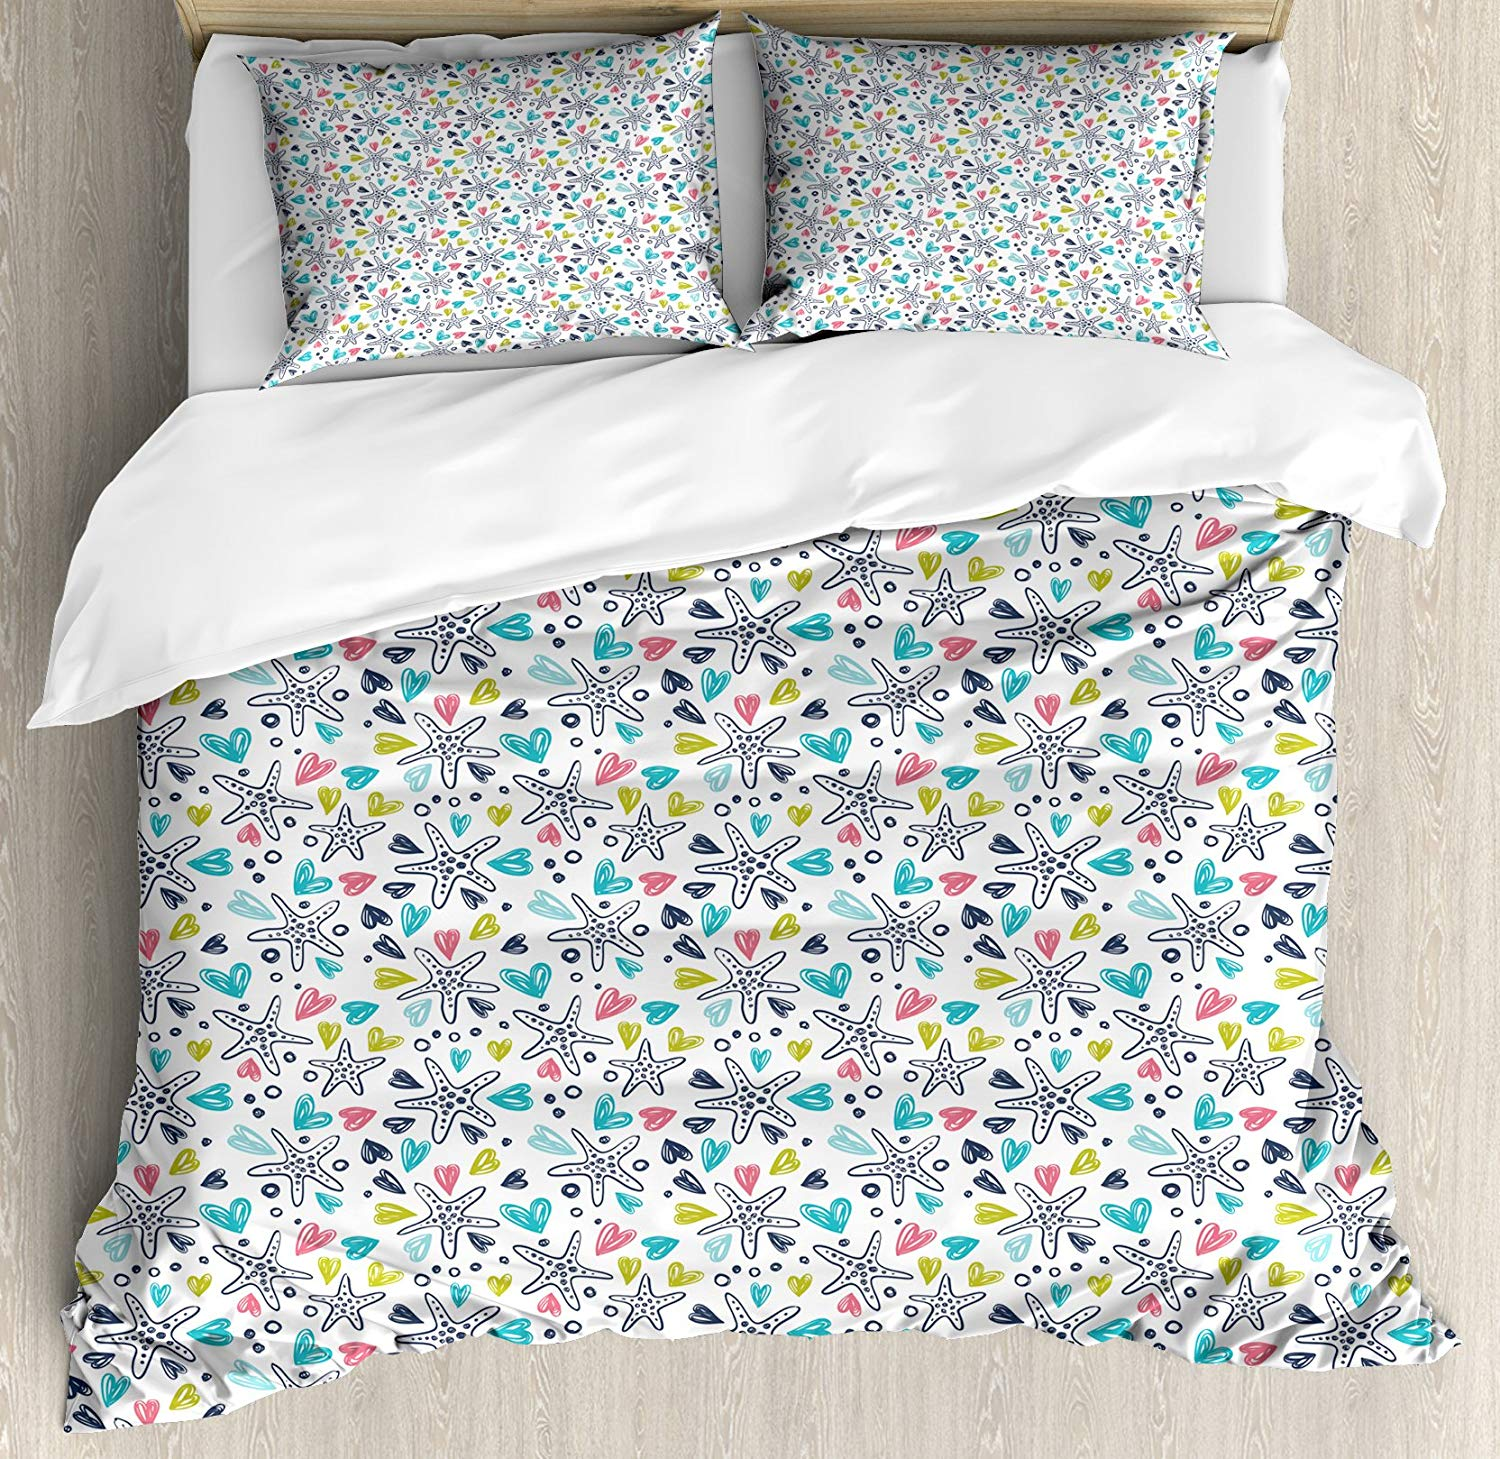 Ambesonne Starfish King Size Duvet Cover Set, Hand Drawn Colorful Love of Sea Life Themed Subaquatic Animal Doodles Illustration, Decorative 3 Piece Bedding Set with 2 Pillow Shams, Multicolor